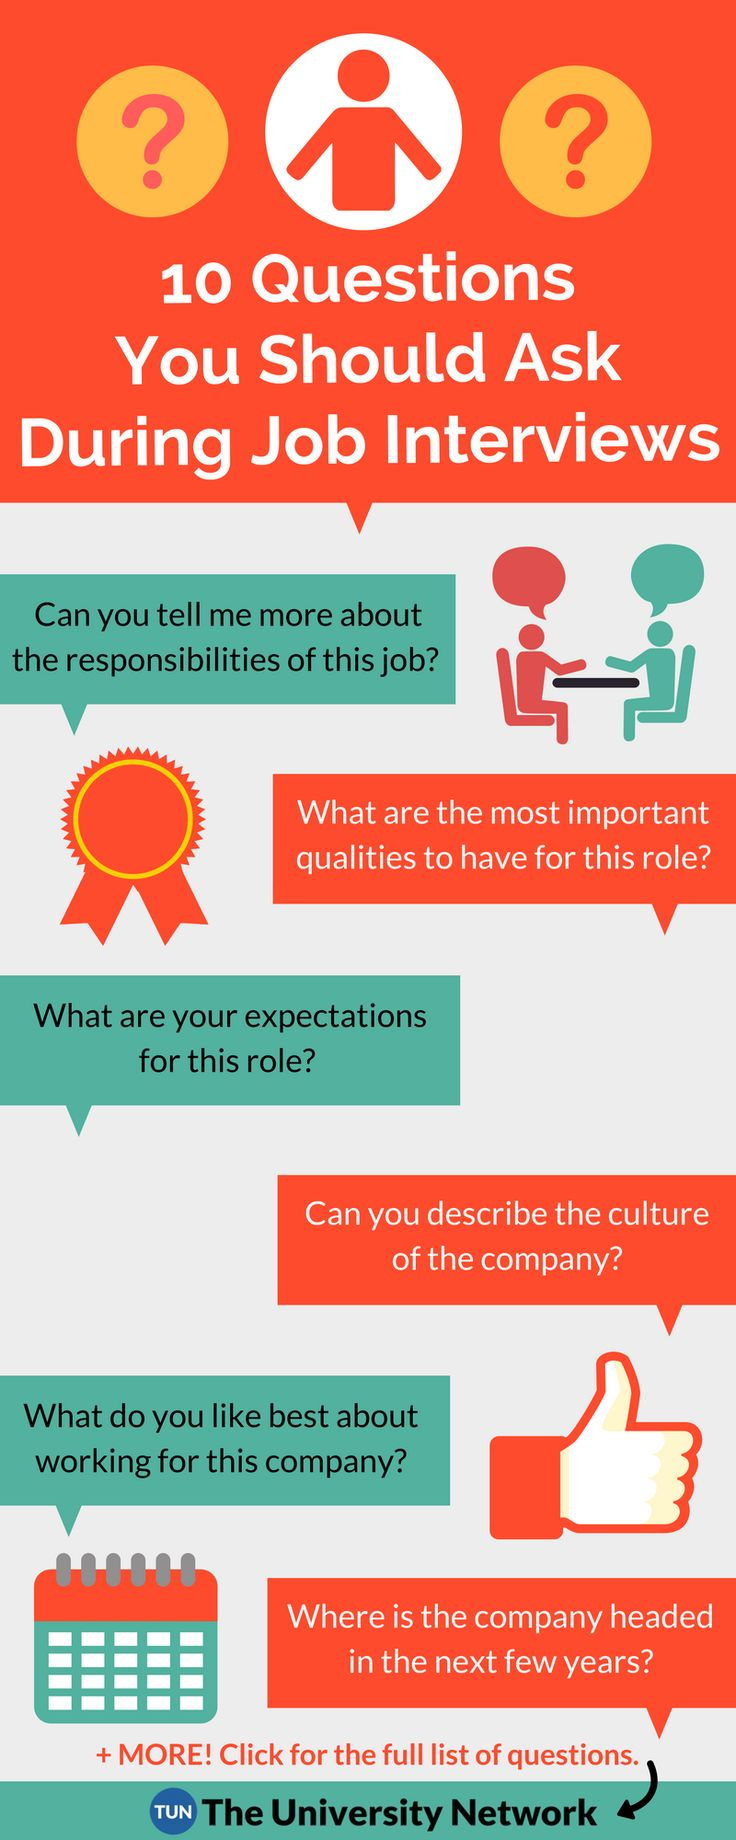 Here's what to ask the interviewer during your next job interview!